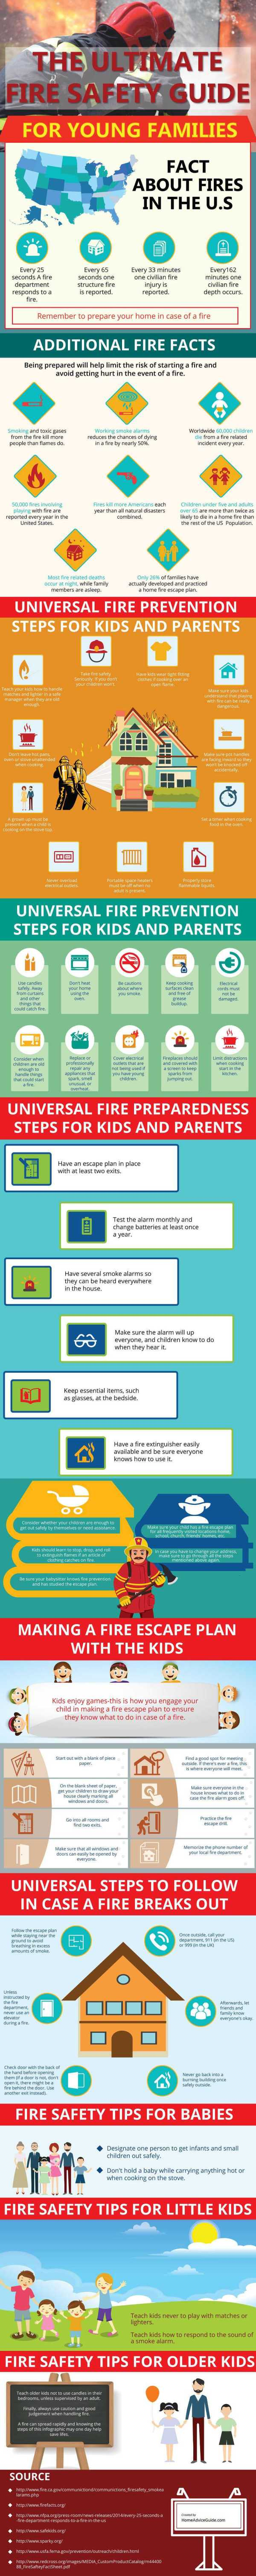 firesafety-infographic